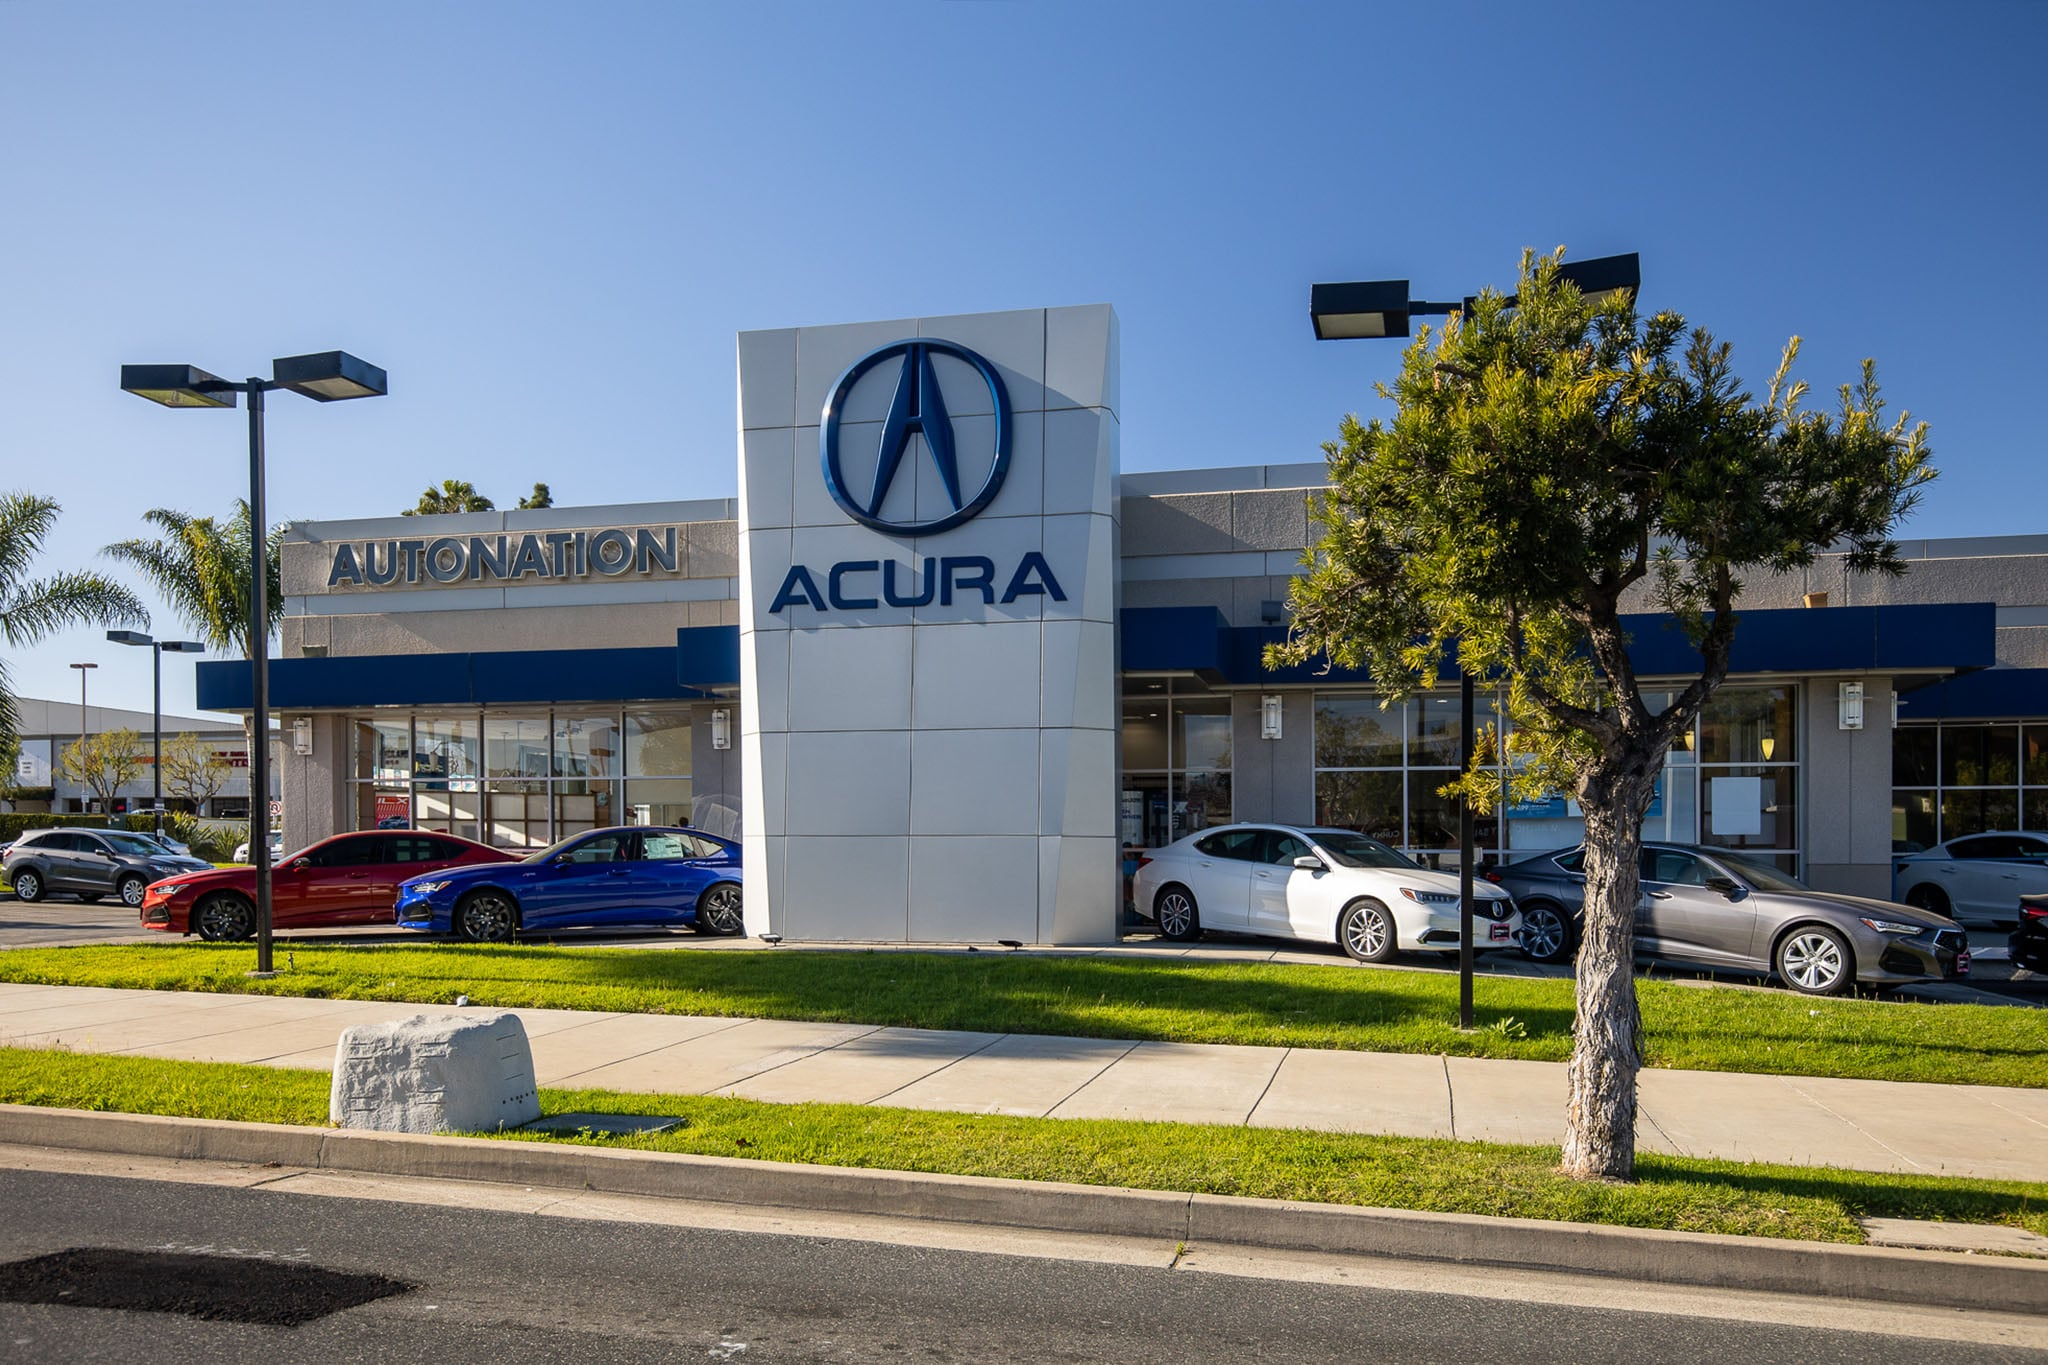 Exterior view of Acura South Bay